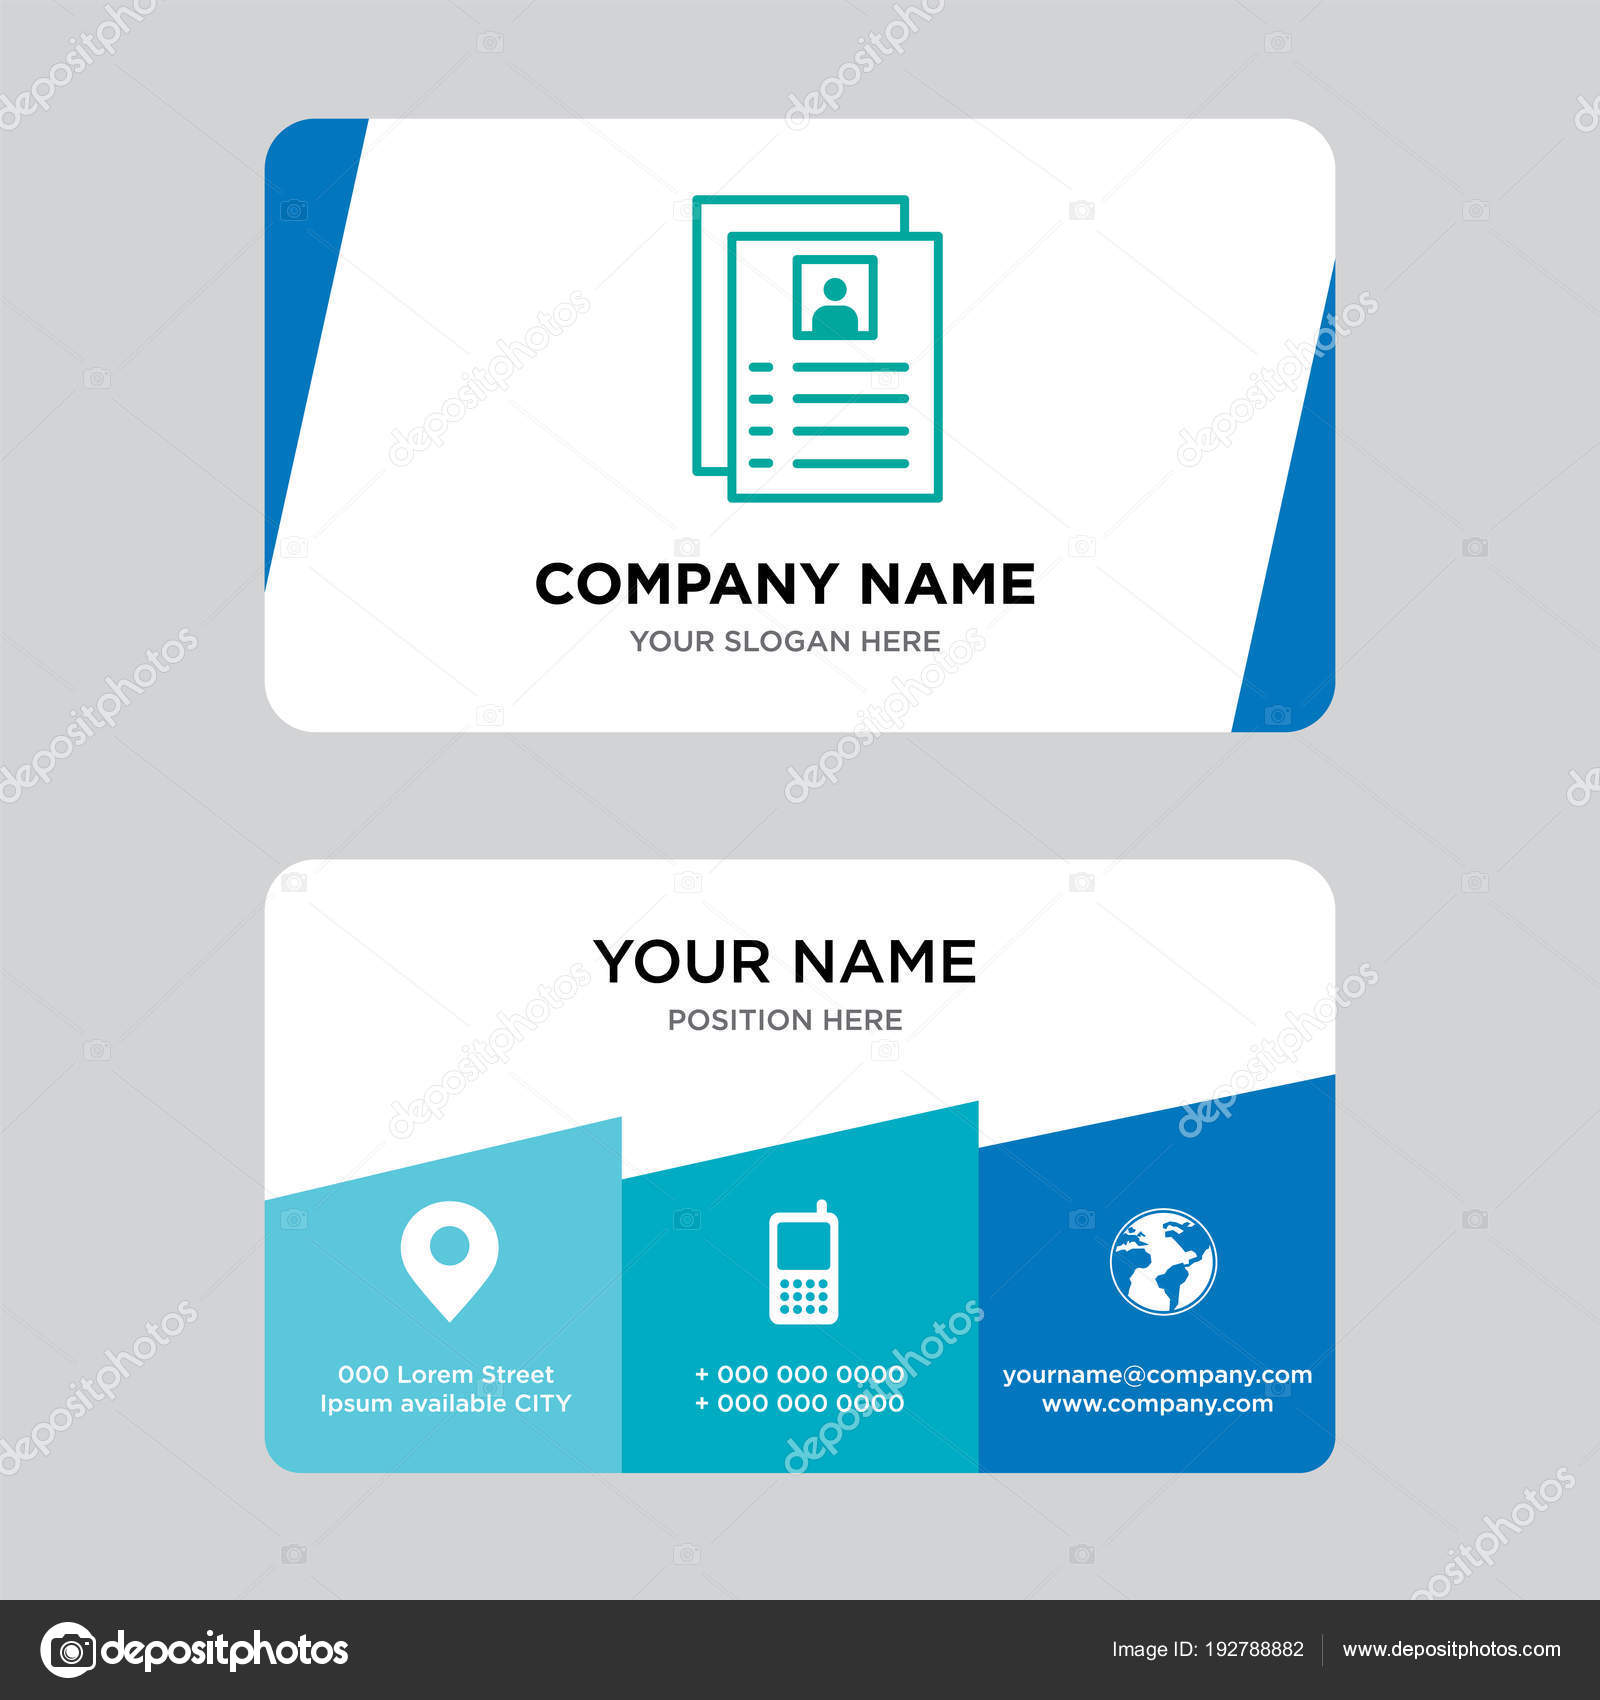 Modele De Conception Carte Visite Flyer Illustration Stock